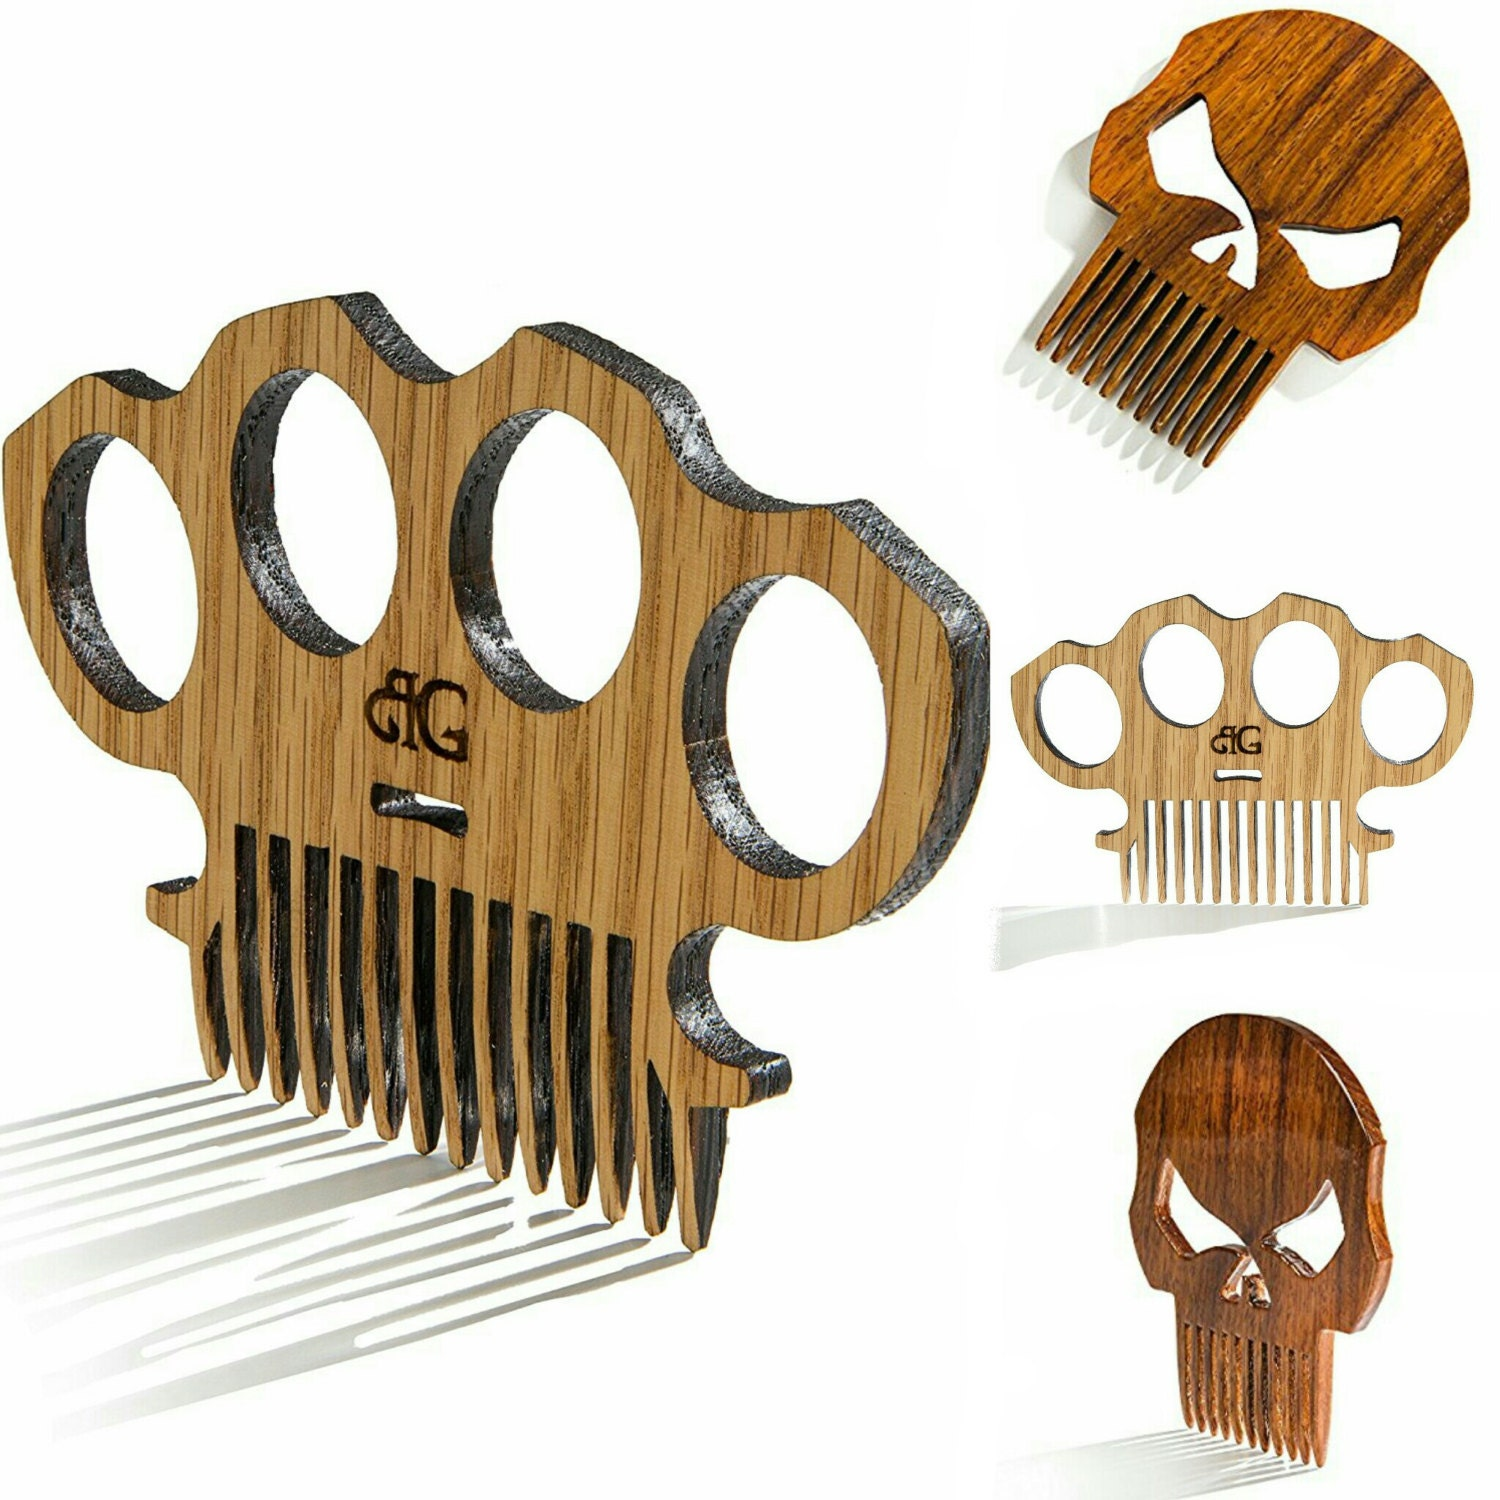 Wooden Knuckles Brass Knuckles Punisher Beard Comb With Awesome Gloss